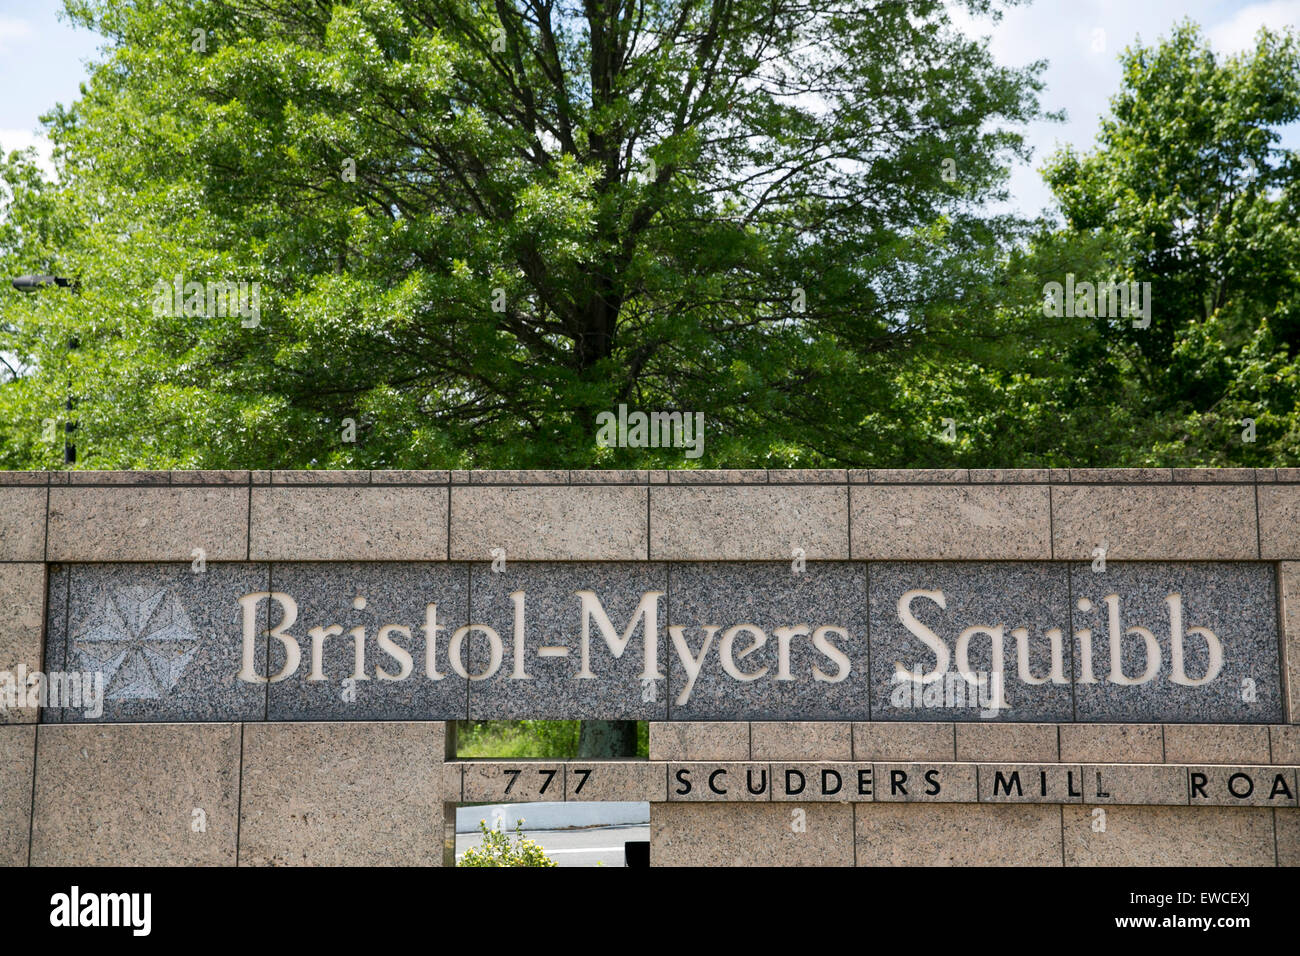 A logo sign outside of a facility occupied by the Bristol-Myers Squibb Company in Princeton, New Jersey. - Stock Image